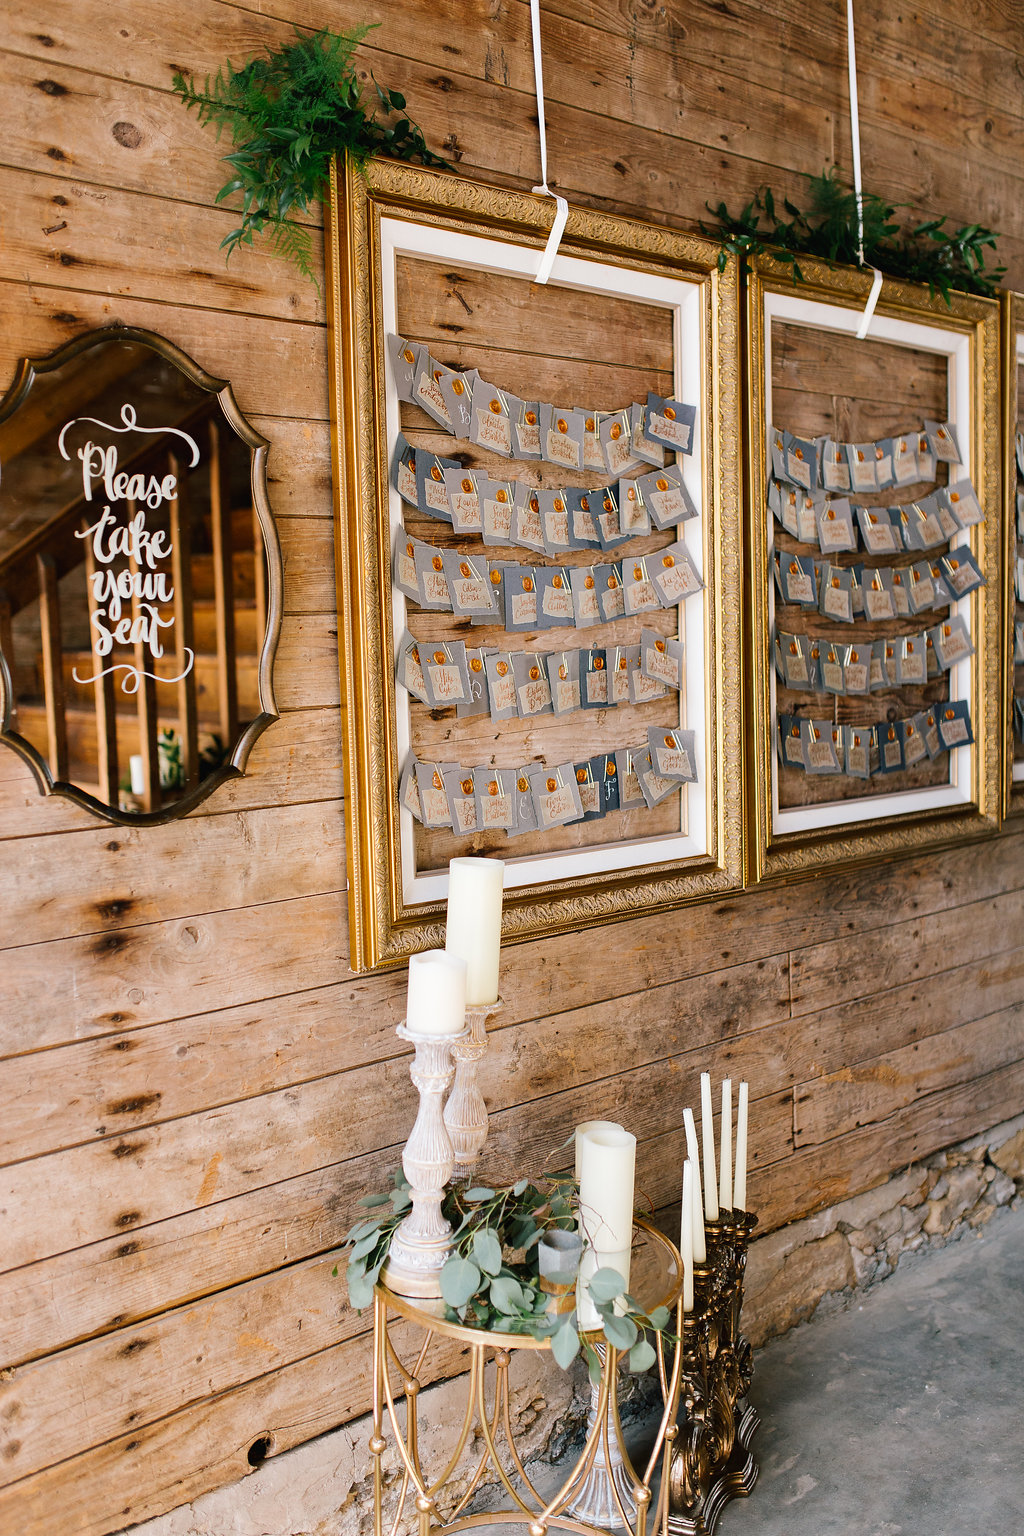 seating chart custom with copper and greenery by A Vintage Touch weddings | Sixpence Events wedding planner | photo by Minnesota wedding photographer Allison Hopperstad